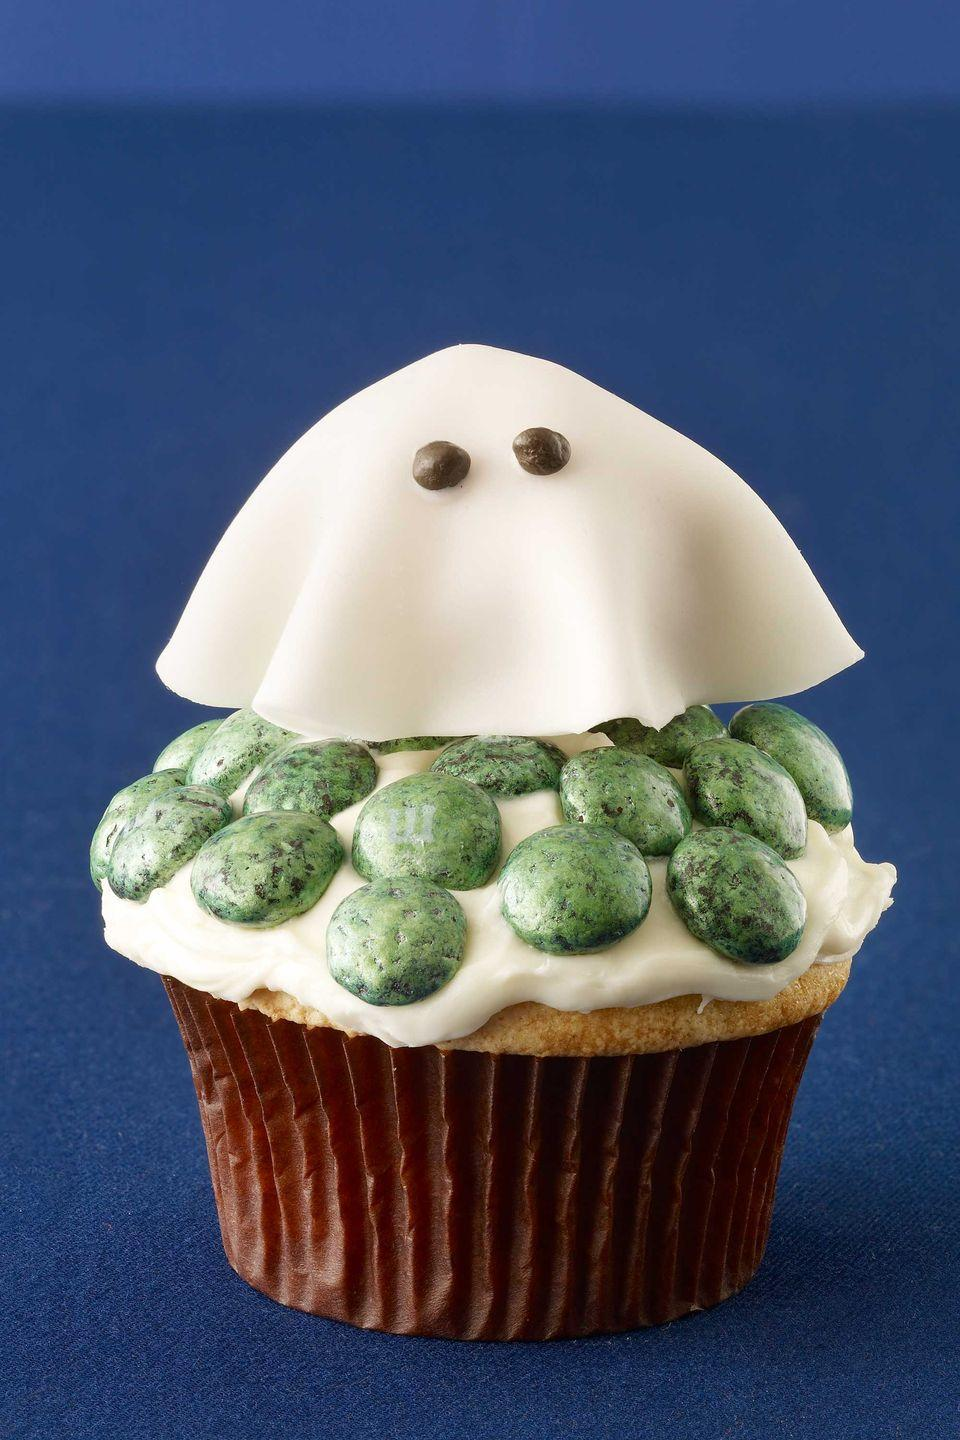 """<p>There's nothing sinister about these treats — just enticing sweetness, with a fondant-covered doughnut-hole ghost floating on a bed of vanilla frosting and dotted with mint chocolate M&M's.</p><p><a href=""""https://www.womansday.com/food-recipes/food-drinks/recipes/a11455/friendly-ghost-cupcake-recipe-122729/"""" rel=""""nofollow noopener"""" target=""""_blank"""" data-ylk=""""slk:Get the Friendly Ghost Cupcake recipe."""" class=""""link rapid-noclick-resp""""><em>Get the Friendly Ghost Cupcake recipe.</em></a></p>"""